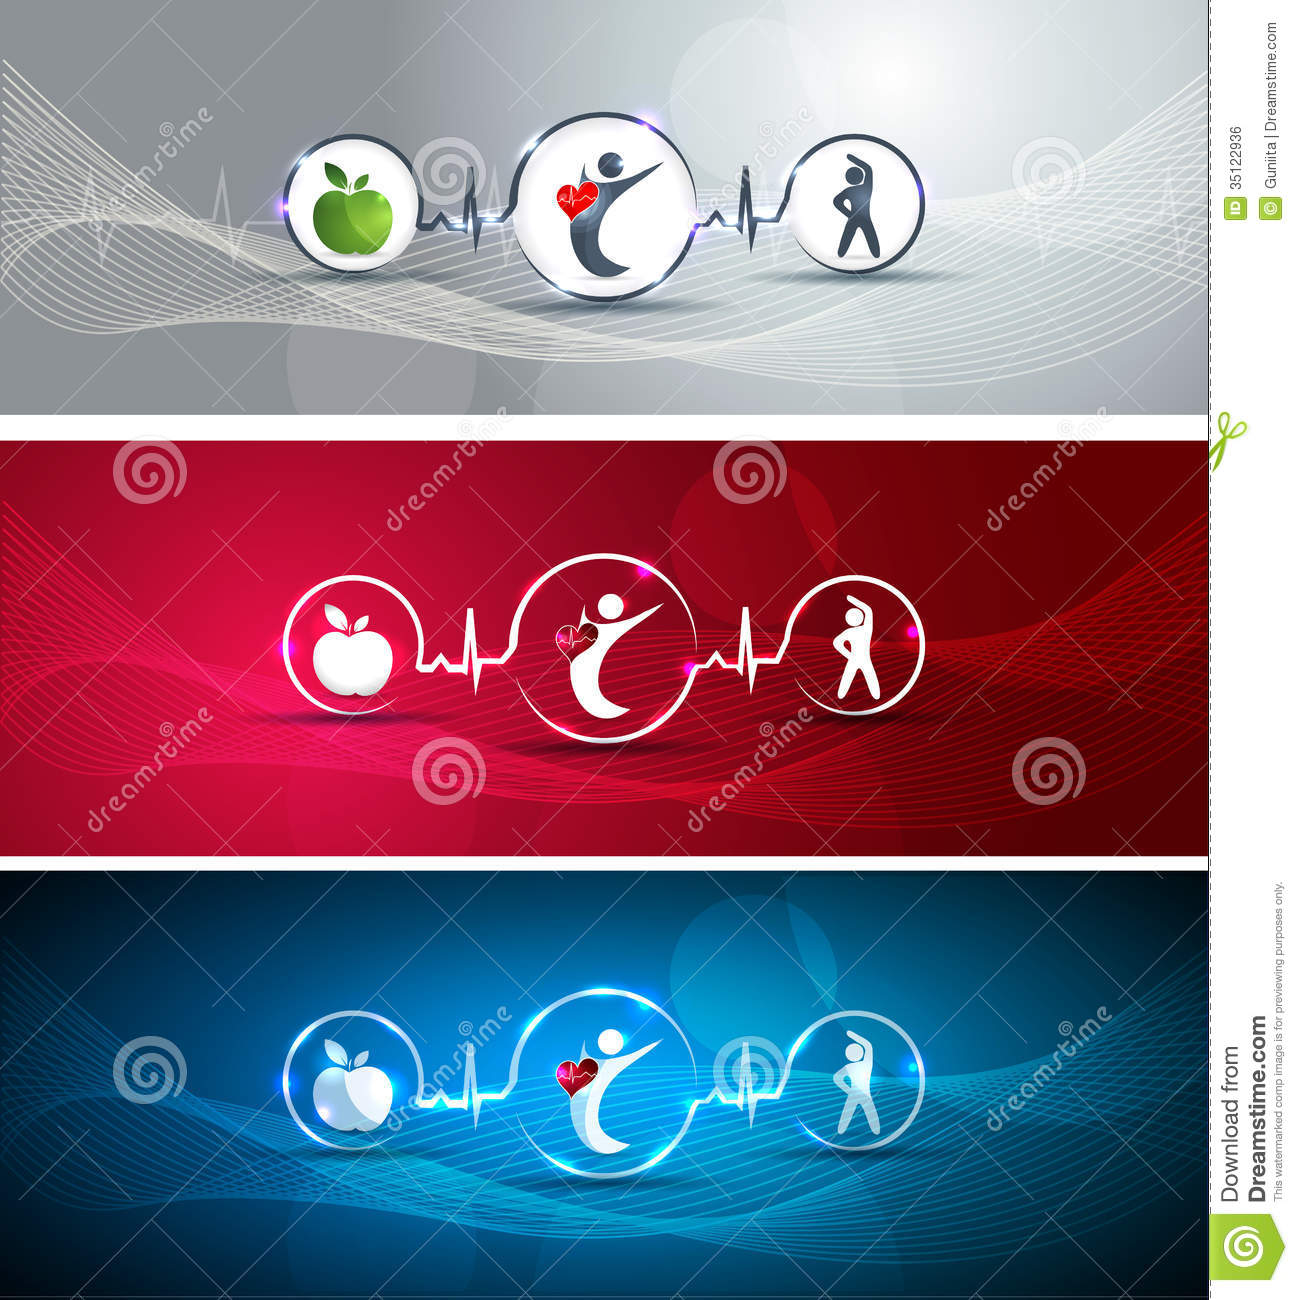 healthy human and heart banners royalty free stock image